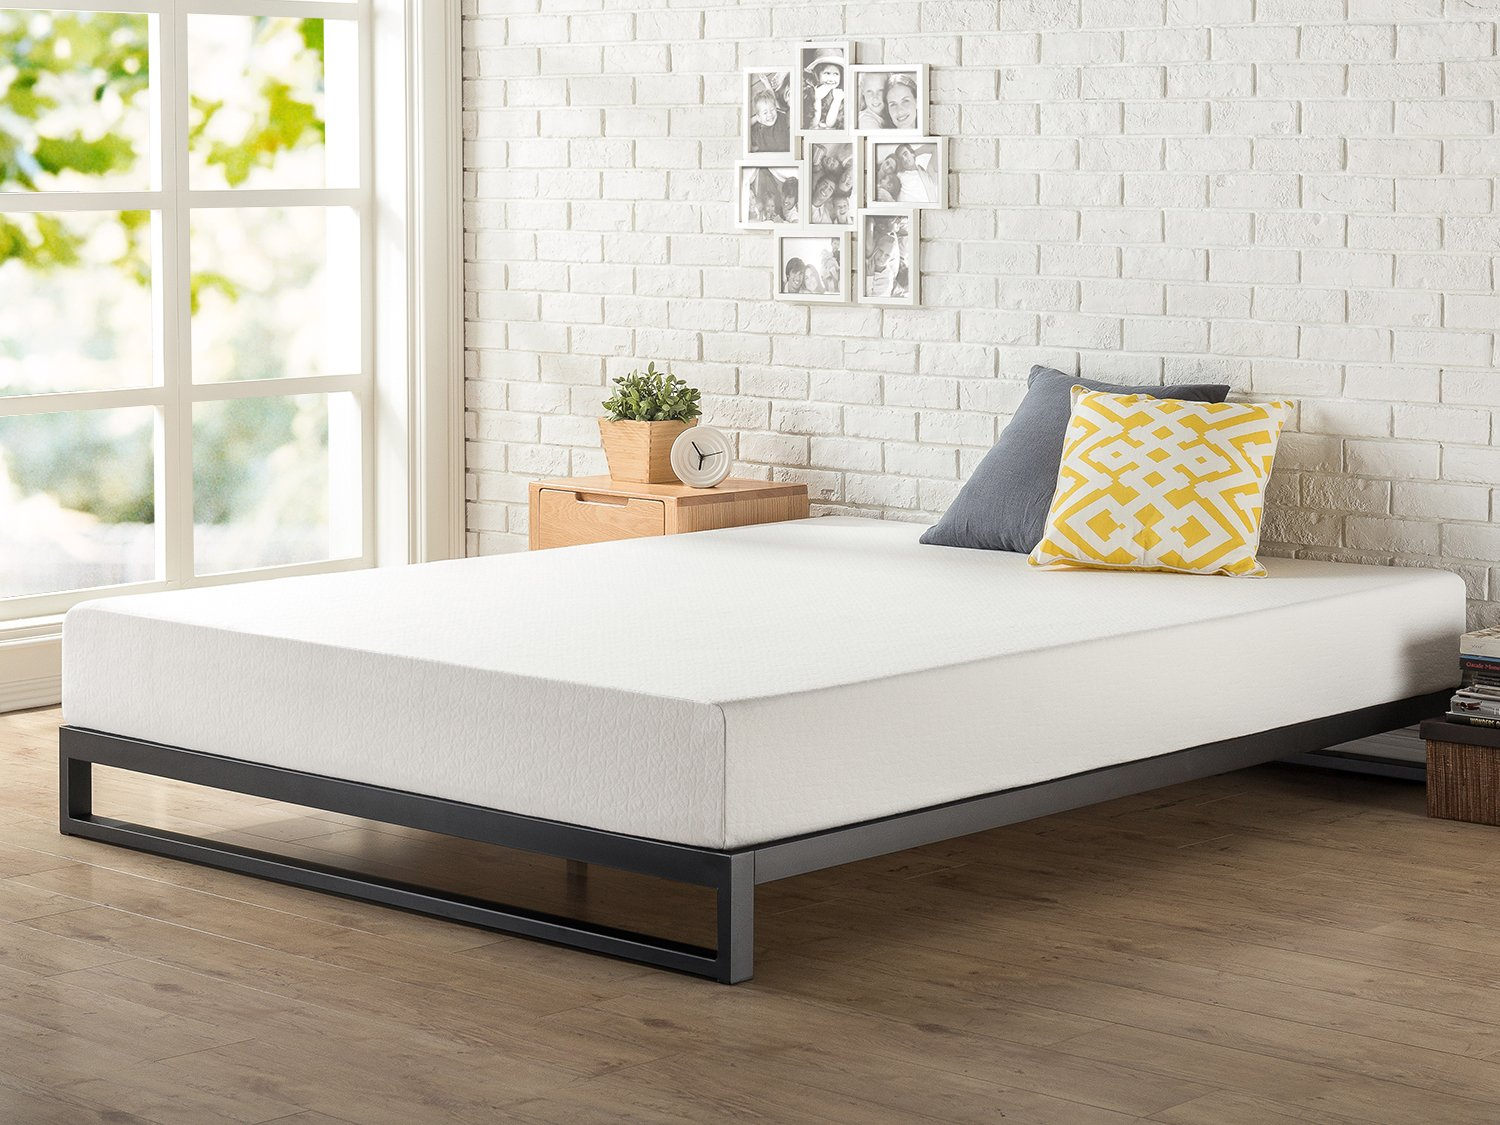 Zinus Trisha Low Bed Frame